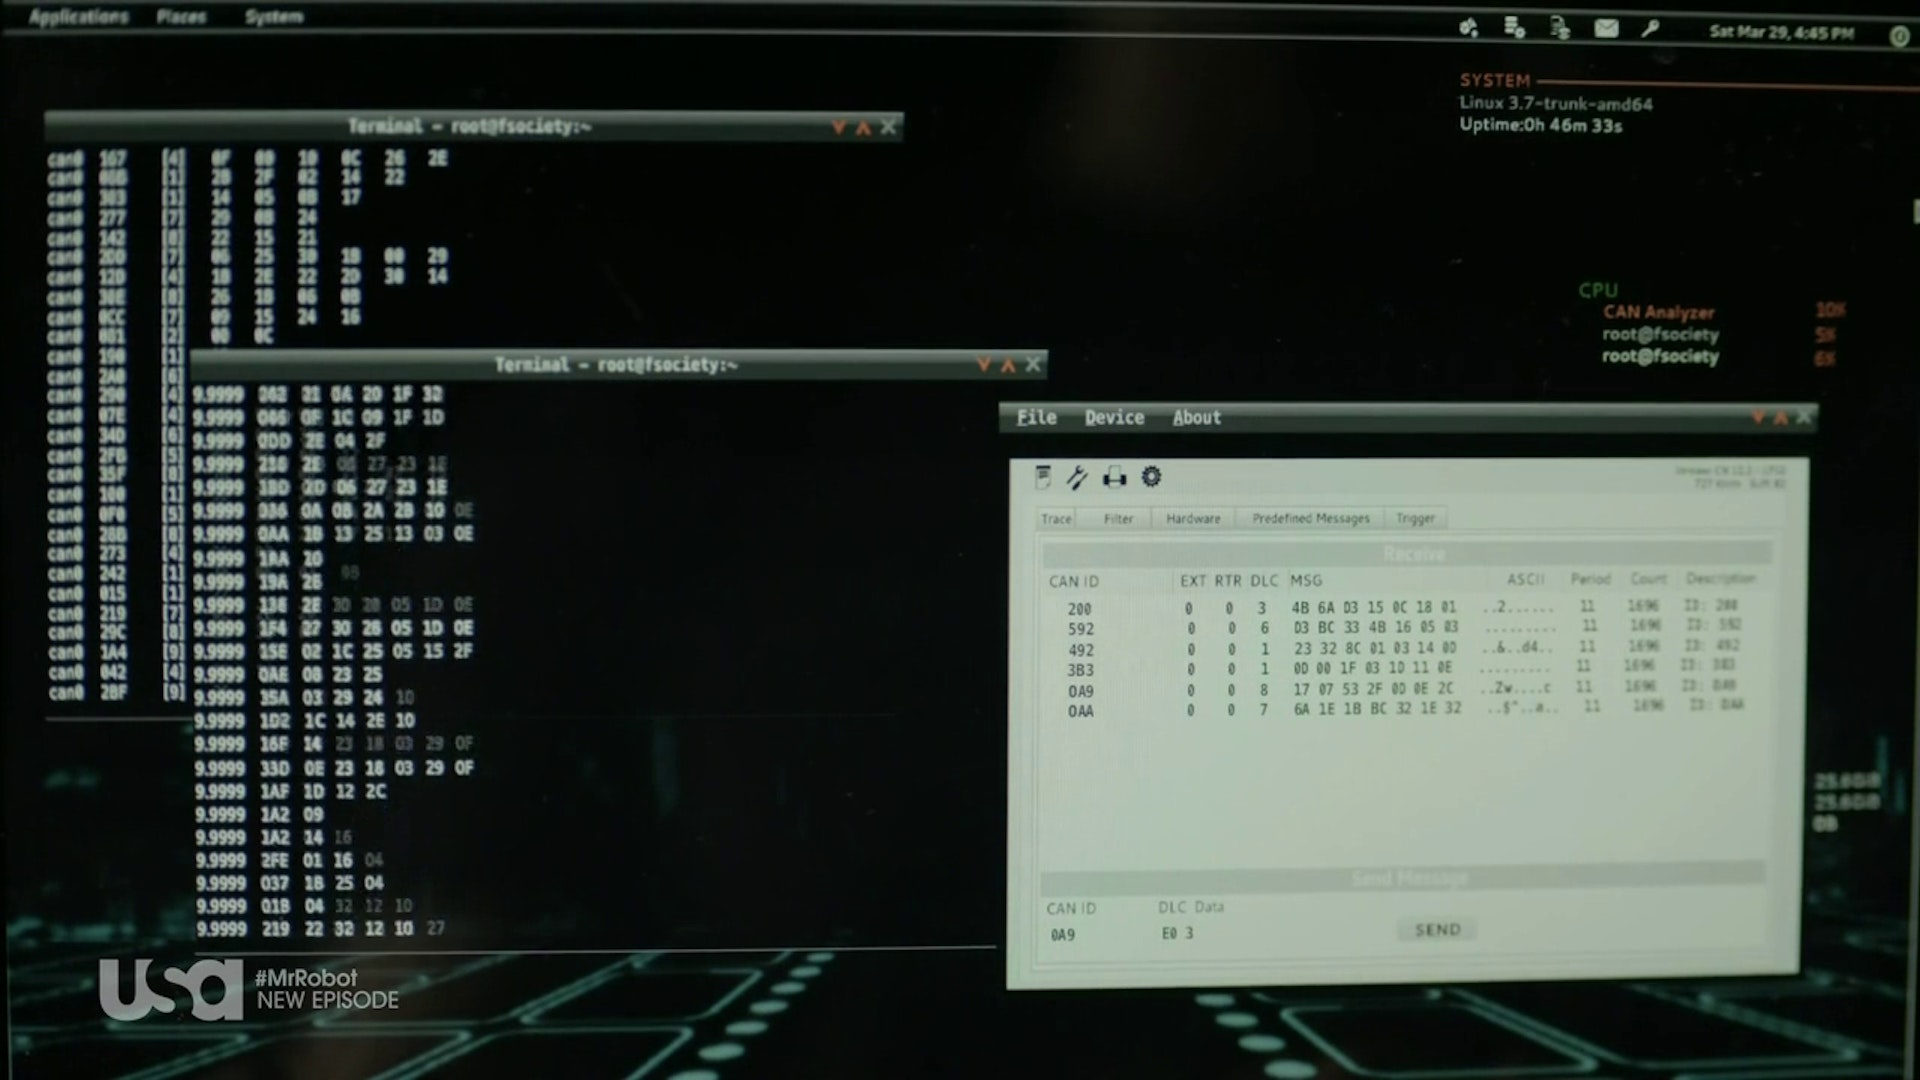 We have no idea what this means, but reliable sources say it's all 100% on the money.